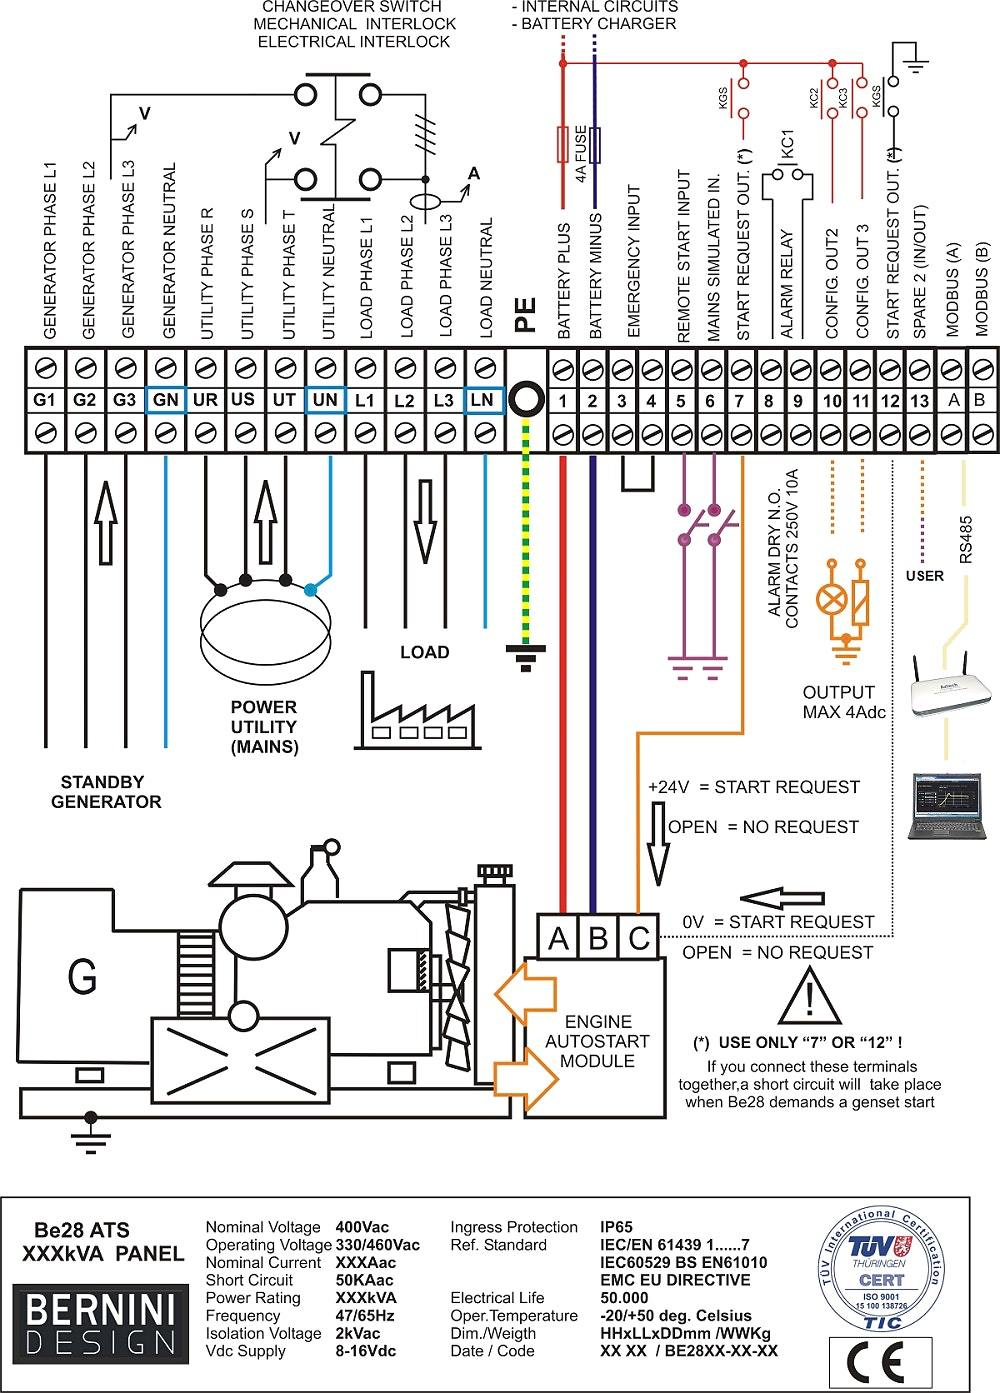 8 Kw Generac Wiring Diagram - 2.14.manualuniverse.co • Generac Kw Wiring Diagram on taylor wiring diagram, karcher wiring diagram, bush hog wiring diagram, hobart wiring diagram, atlas wiring diagram, devilbiss wiring diagram, sears wiring diagram, simplicity wiring diagram, automatic transfer switch wiring diagram, dremel wiring diagram, detroit wiring diagram, graco wiring diagram, general wiring diagram, mi-t-m wiring diagram, ingersoll rand wiring diagram, little giant wiring diagram, columbia wiring diagram, northstar wiring diagram, scotts wiring diagram, bolens wiring diagram,